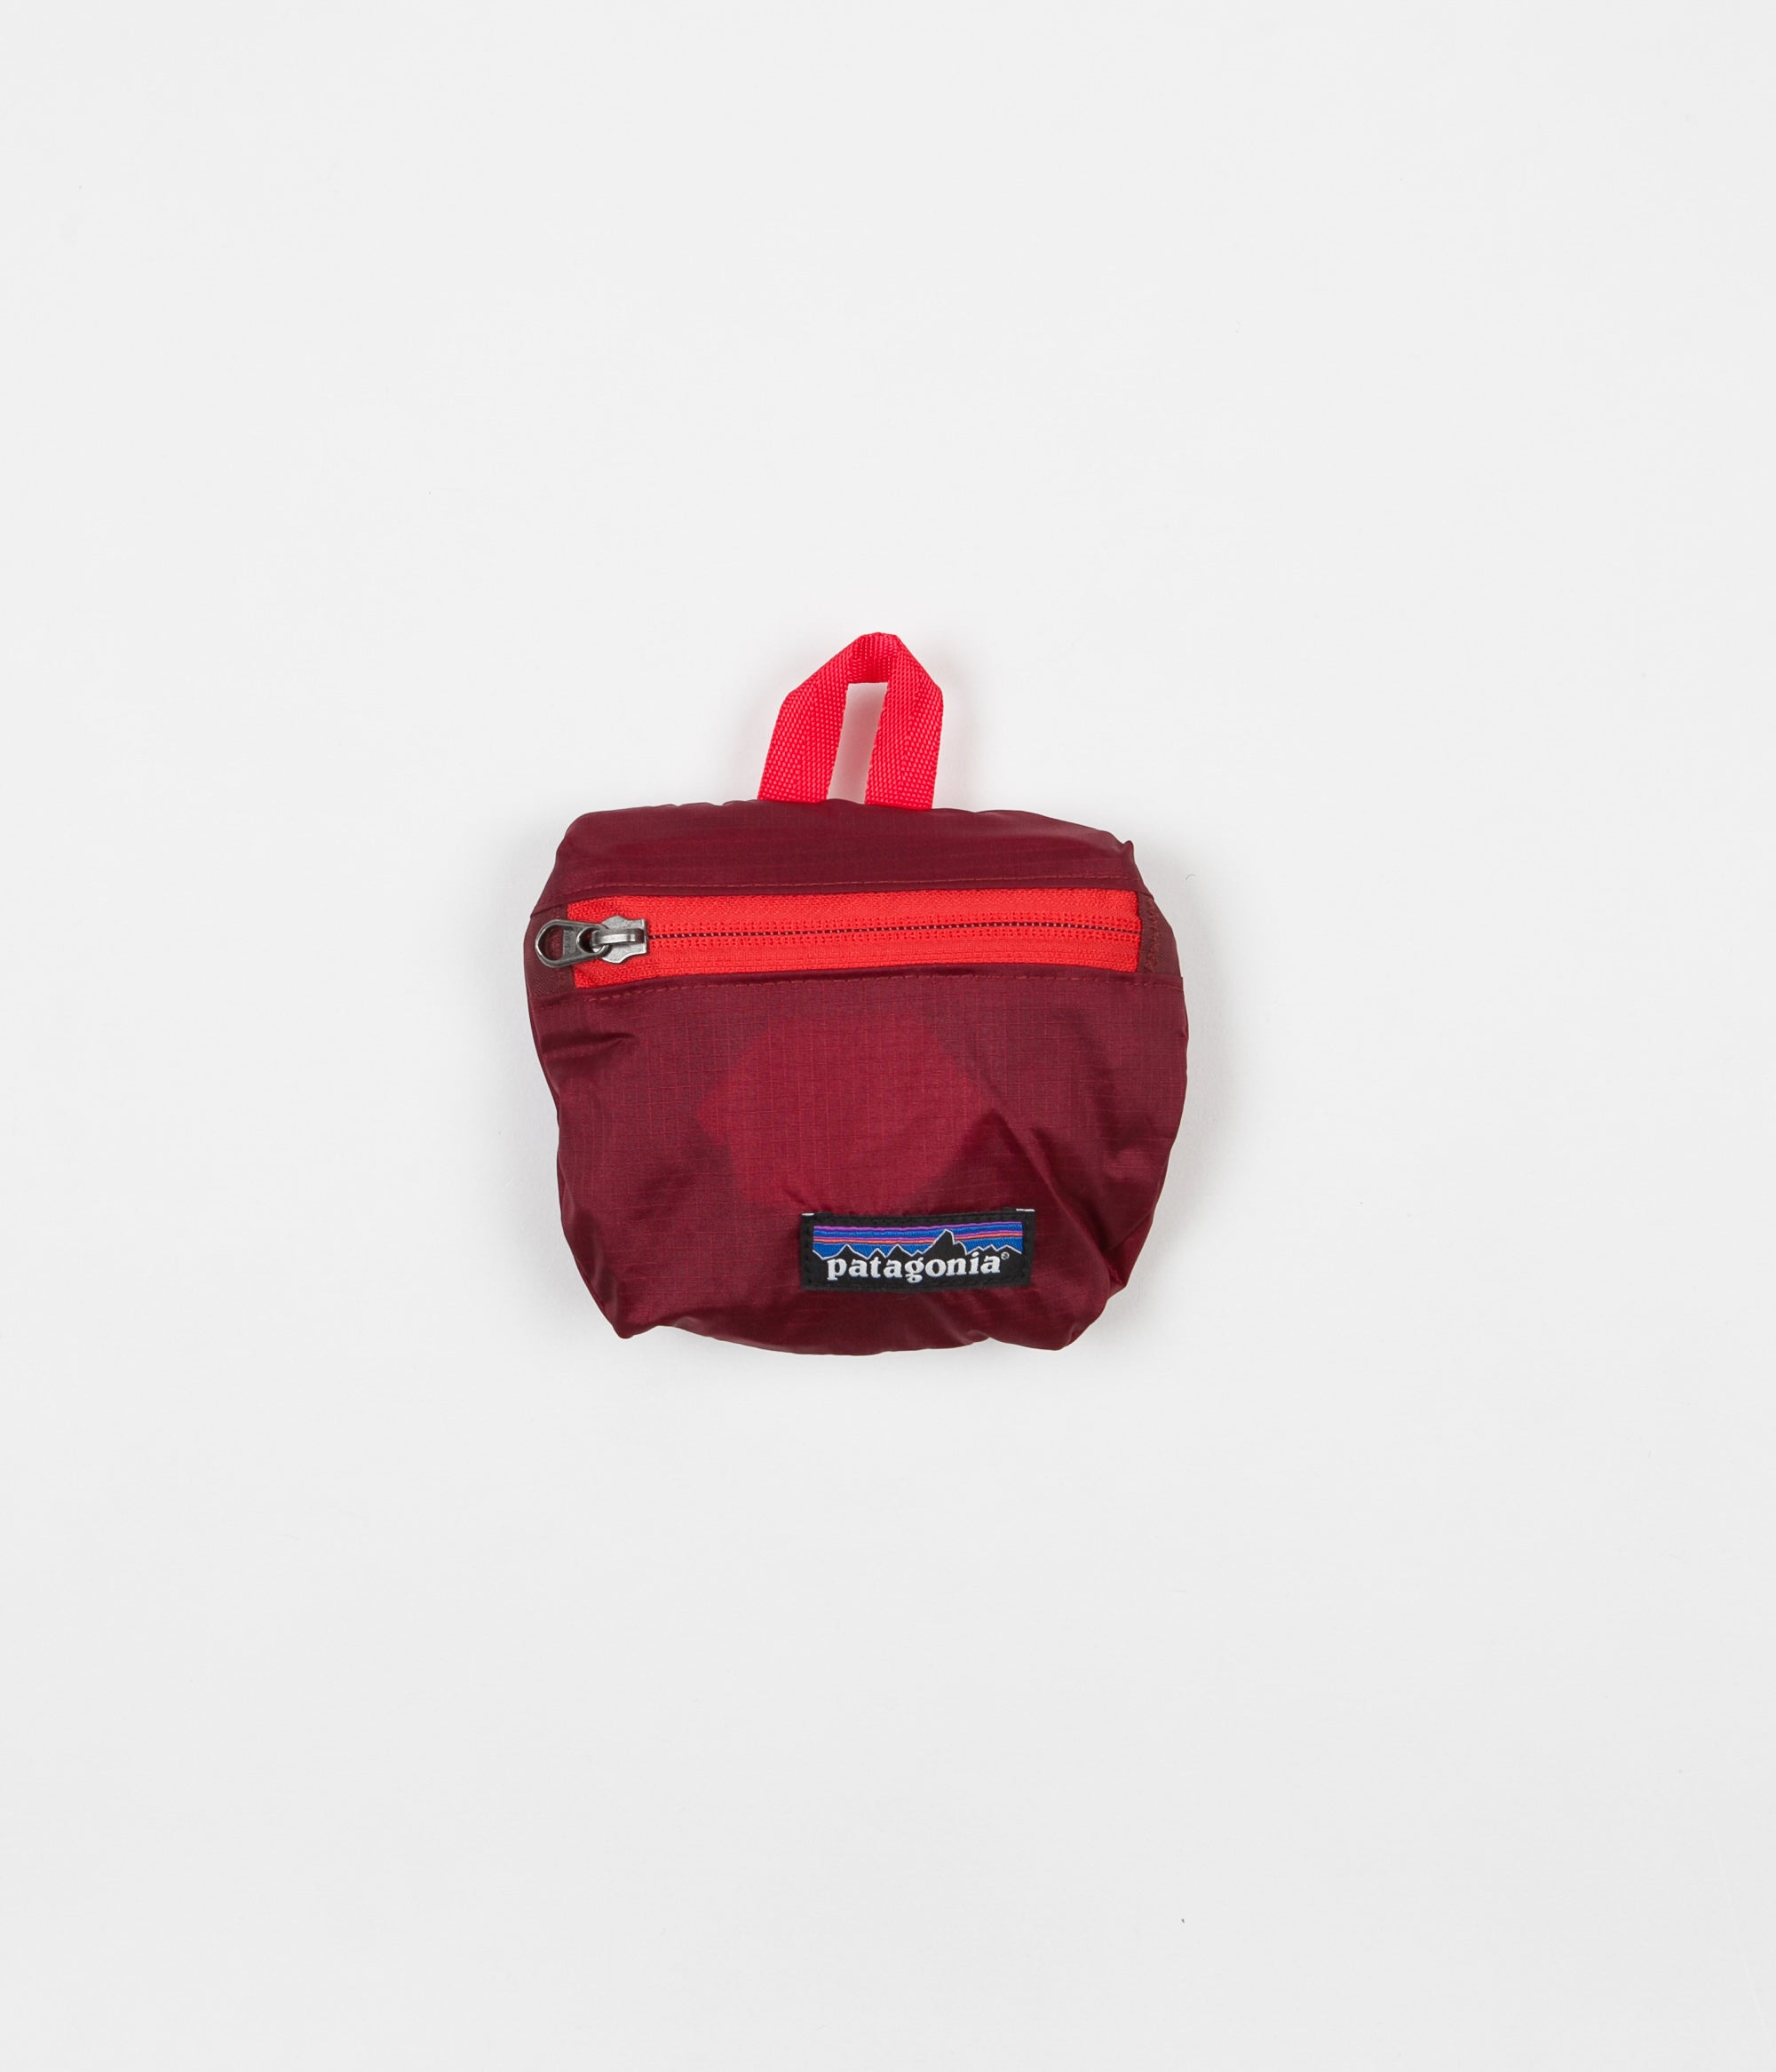 6993a32aaa1 Patagonia Lightweight Travel Mini Hip Pack - Oxide Red ...